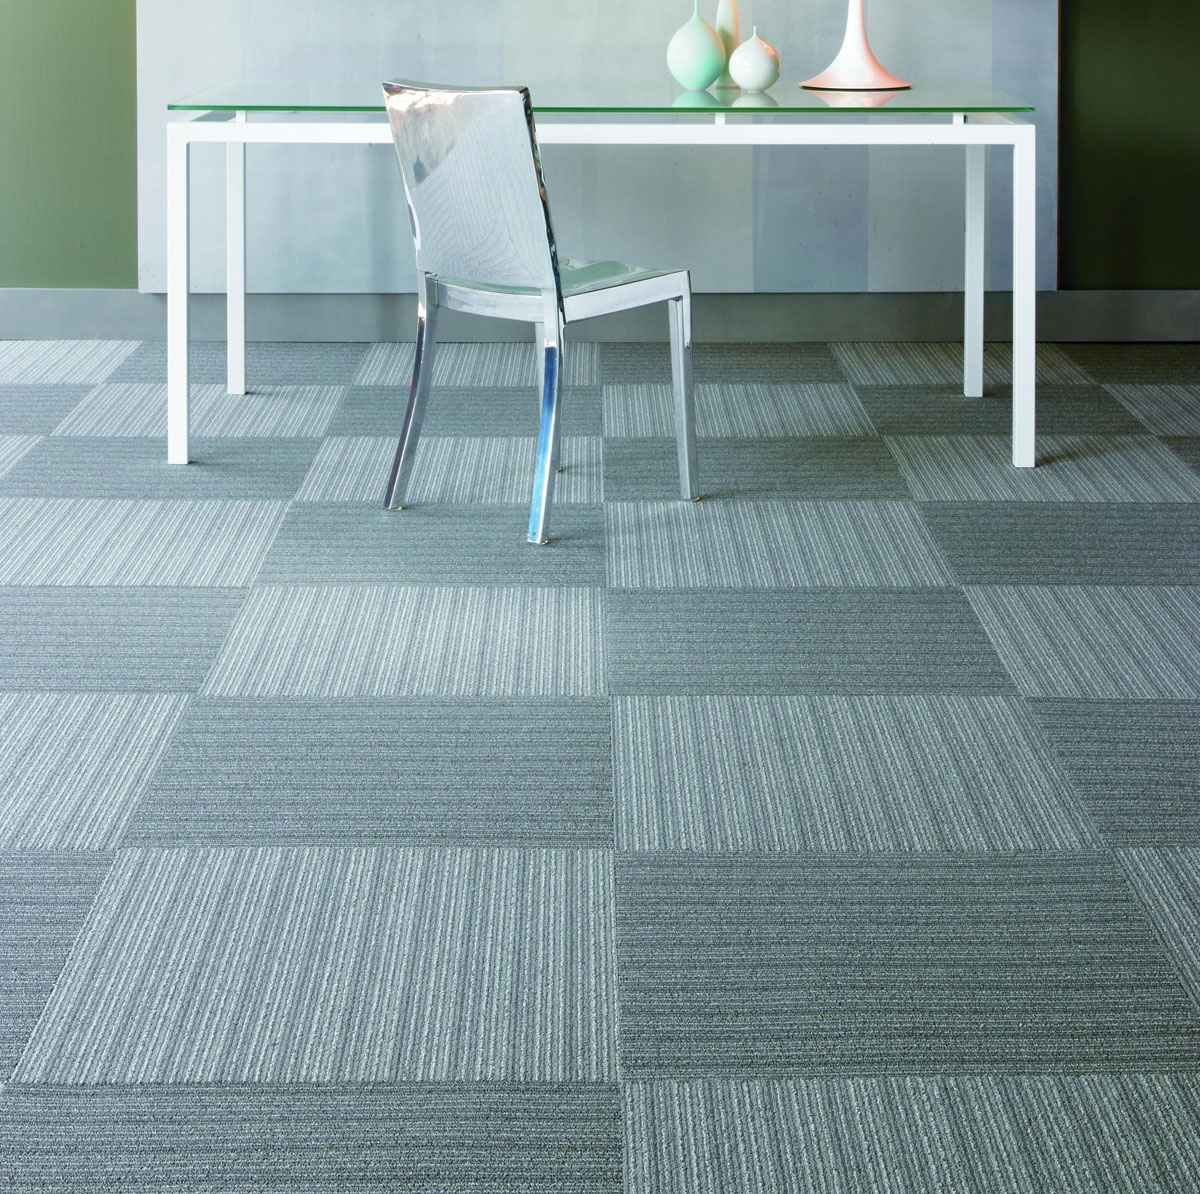 Commercial Carpet Tiles For Basement